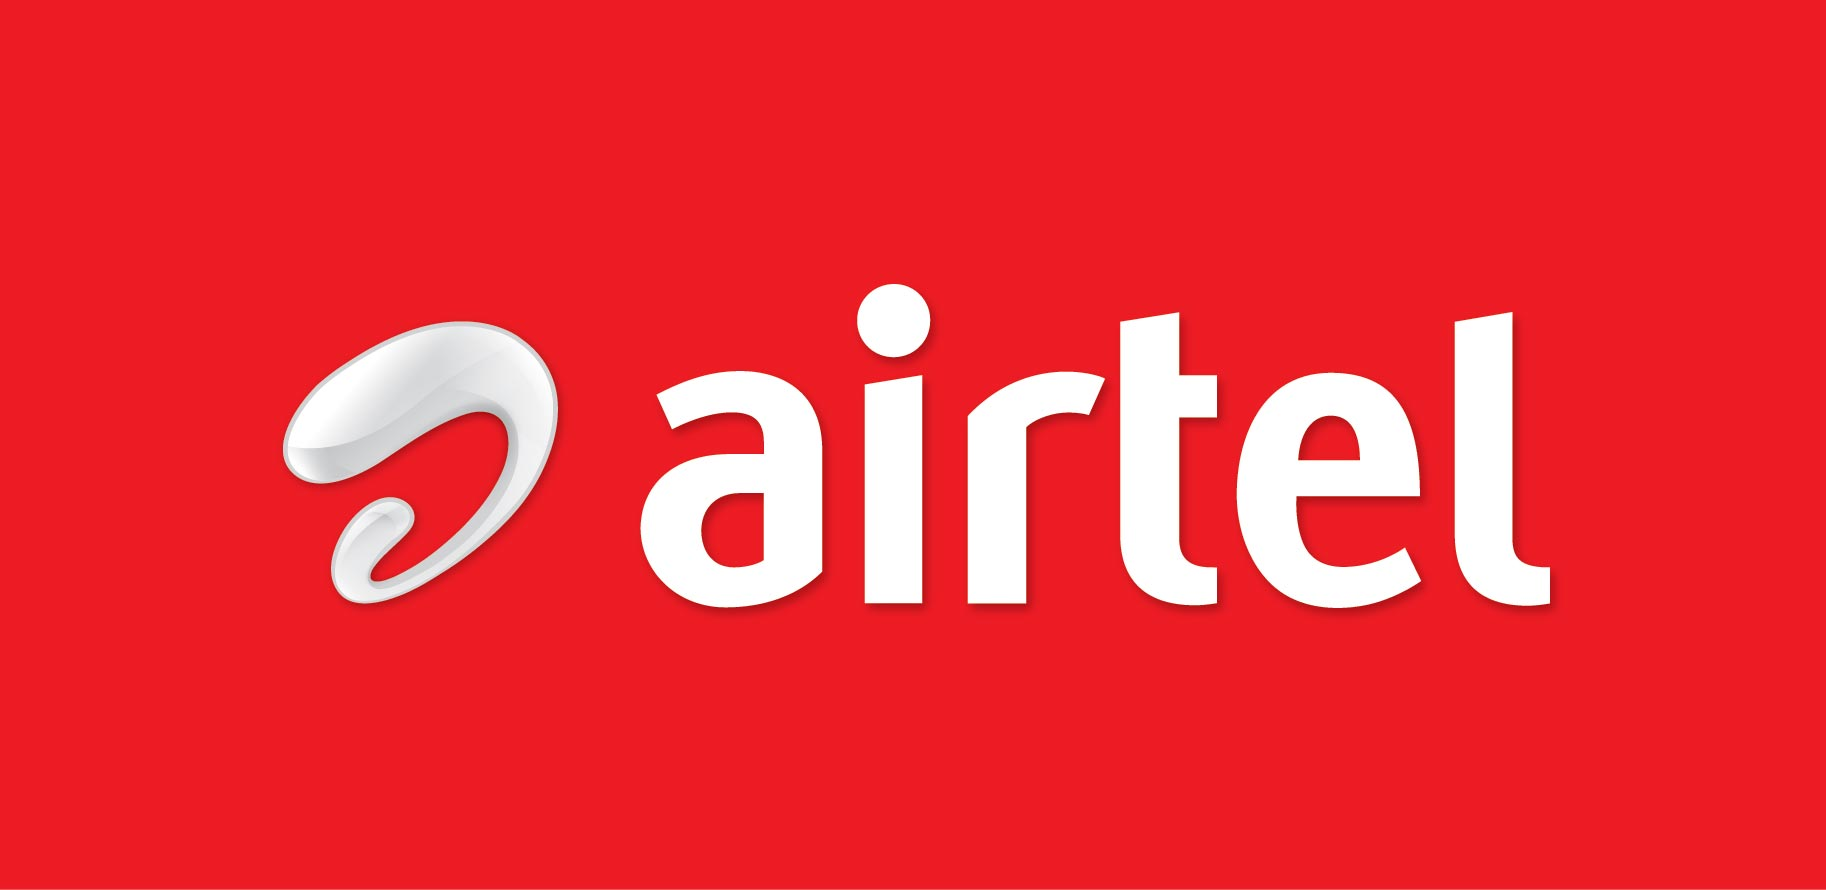 BREAKING NEWS!     AIRTEL NIGERIA – DO NOT DISTURB (DND) IMPLEMENTED!